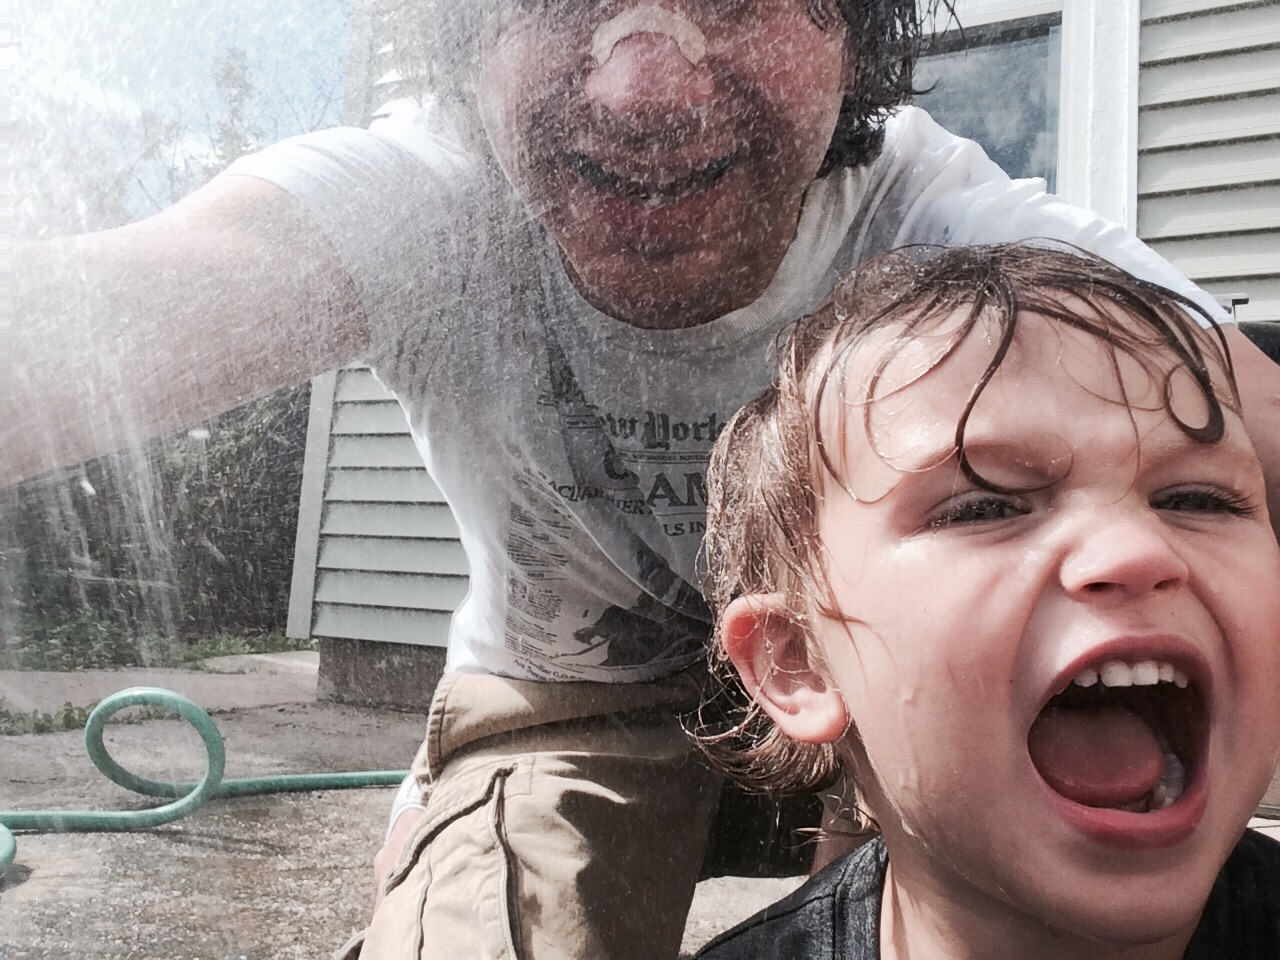 I probably shouldn't put my phone around Felix with a hose, but phone came out fine and got a fun pic!